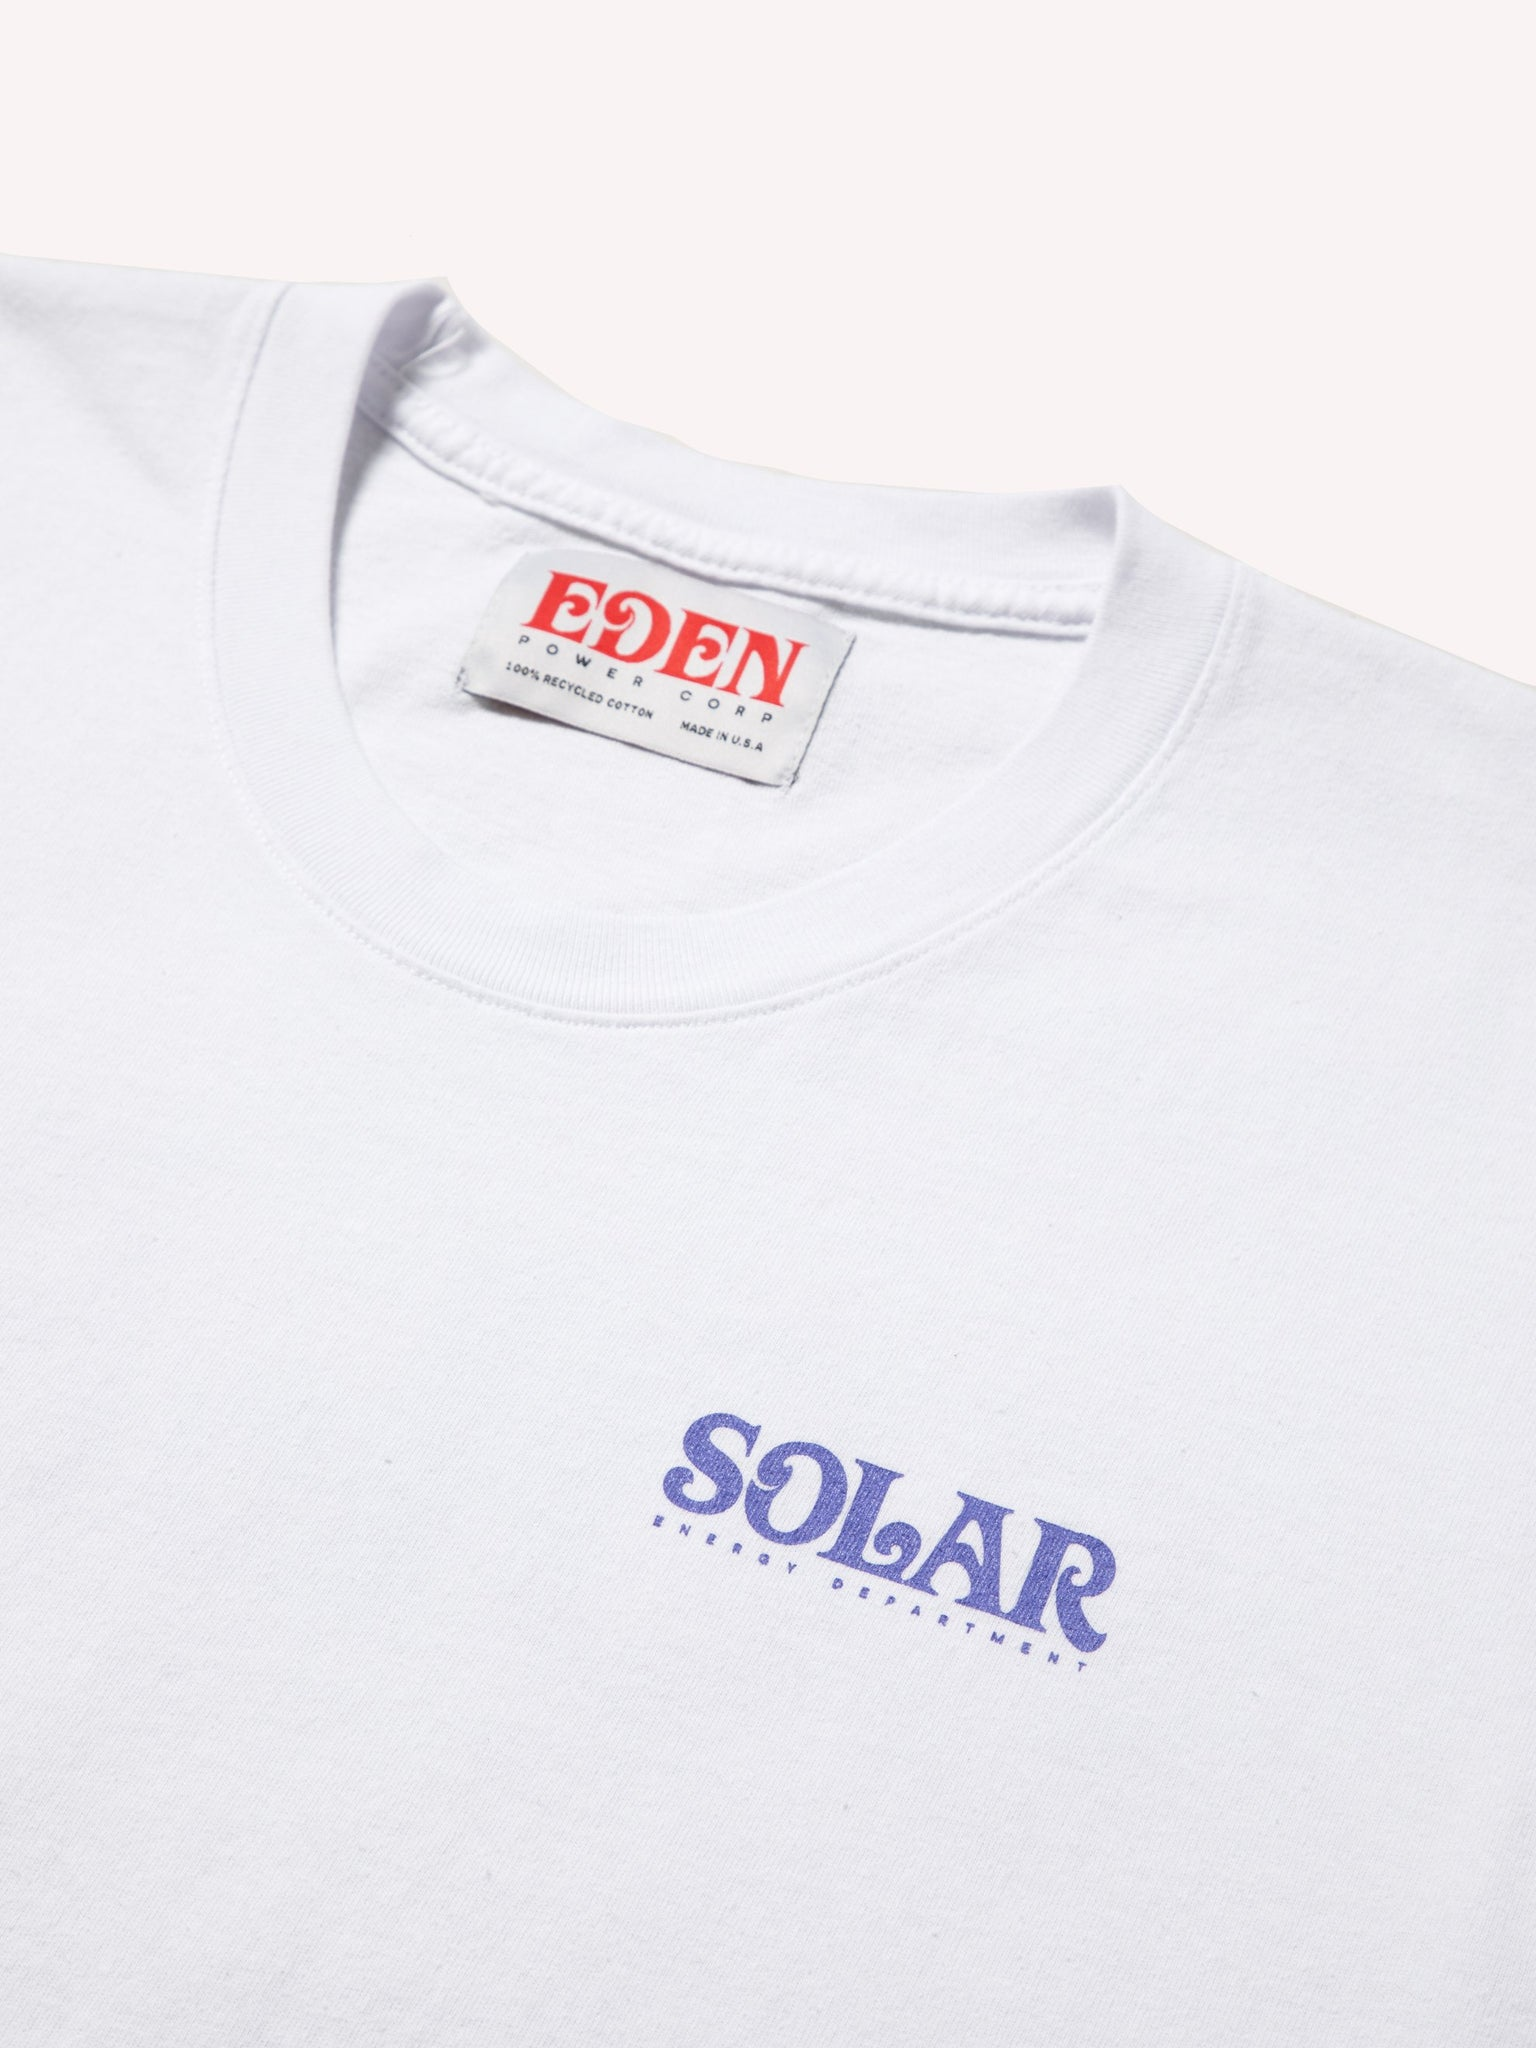 solar-recycled-t-shirt